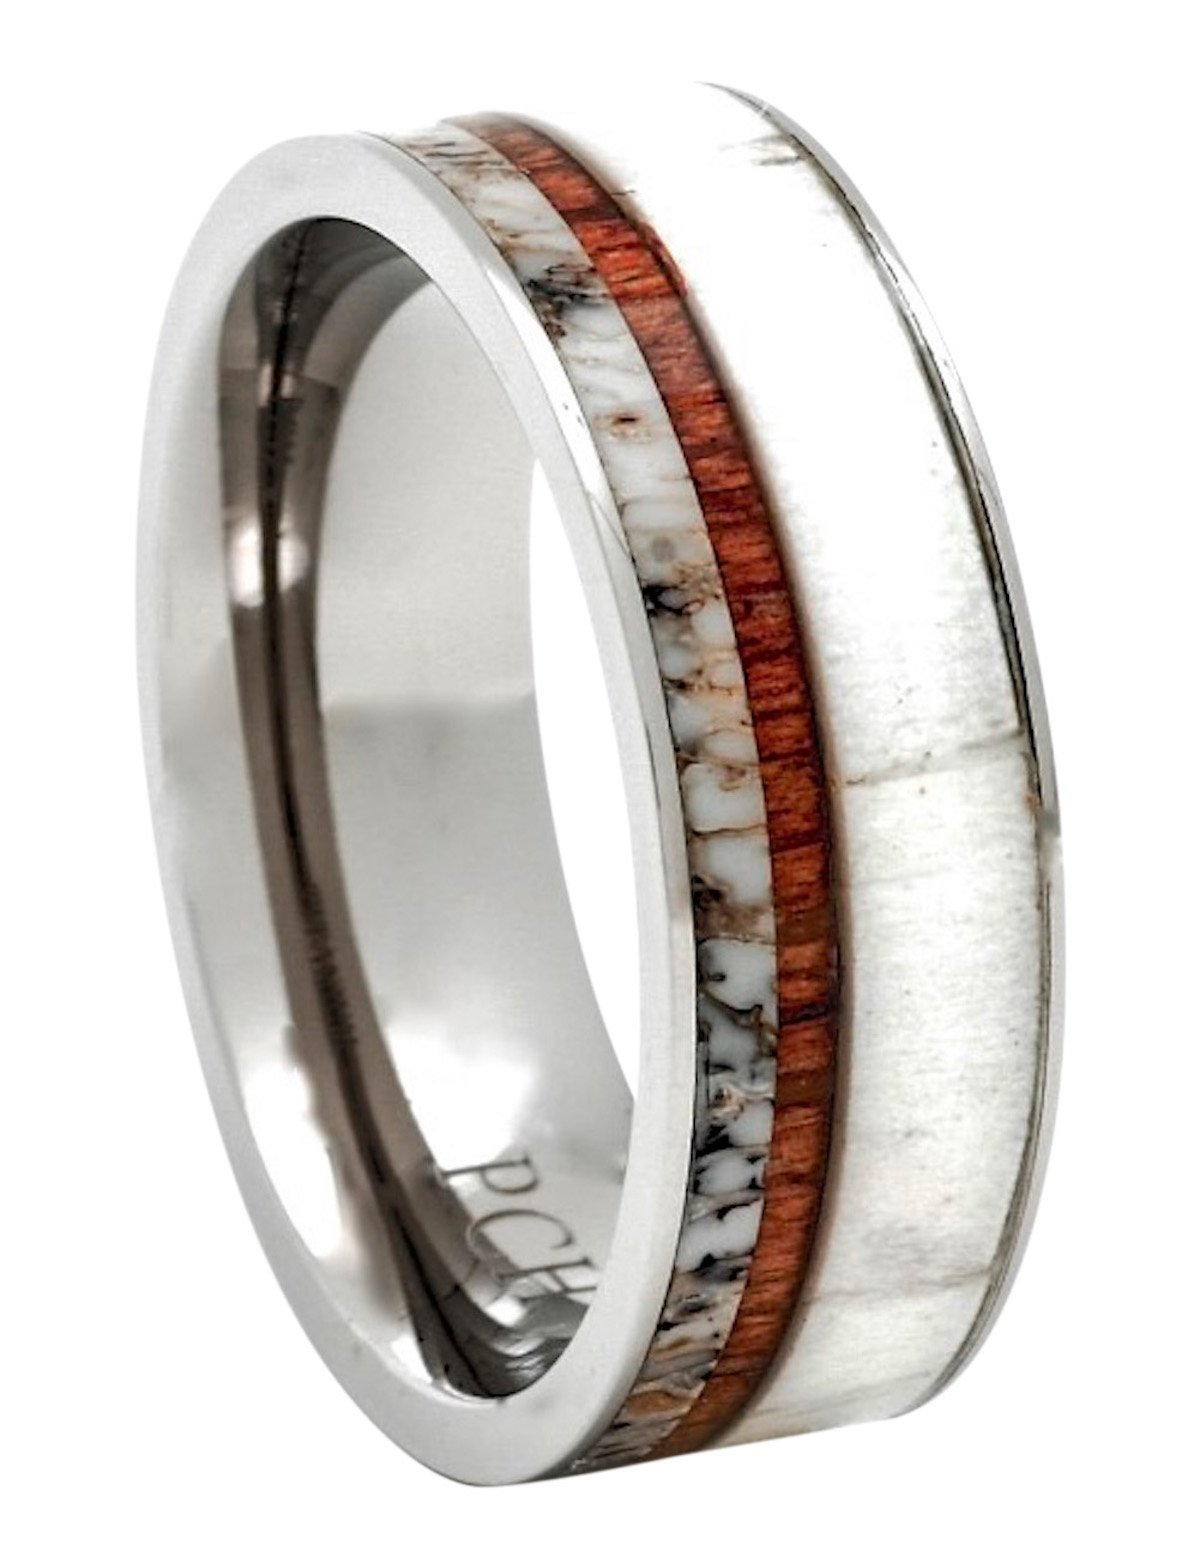 PCH Jewelers Titanium Deer Antler Ring with Koa Wood Inlay Flat Top 8mm Wedding Band Comfort Fit (10)